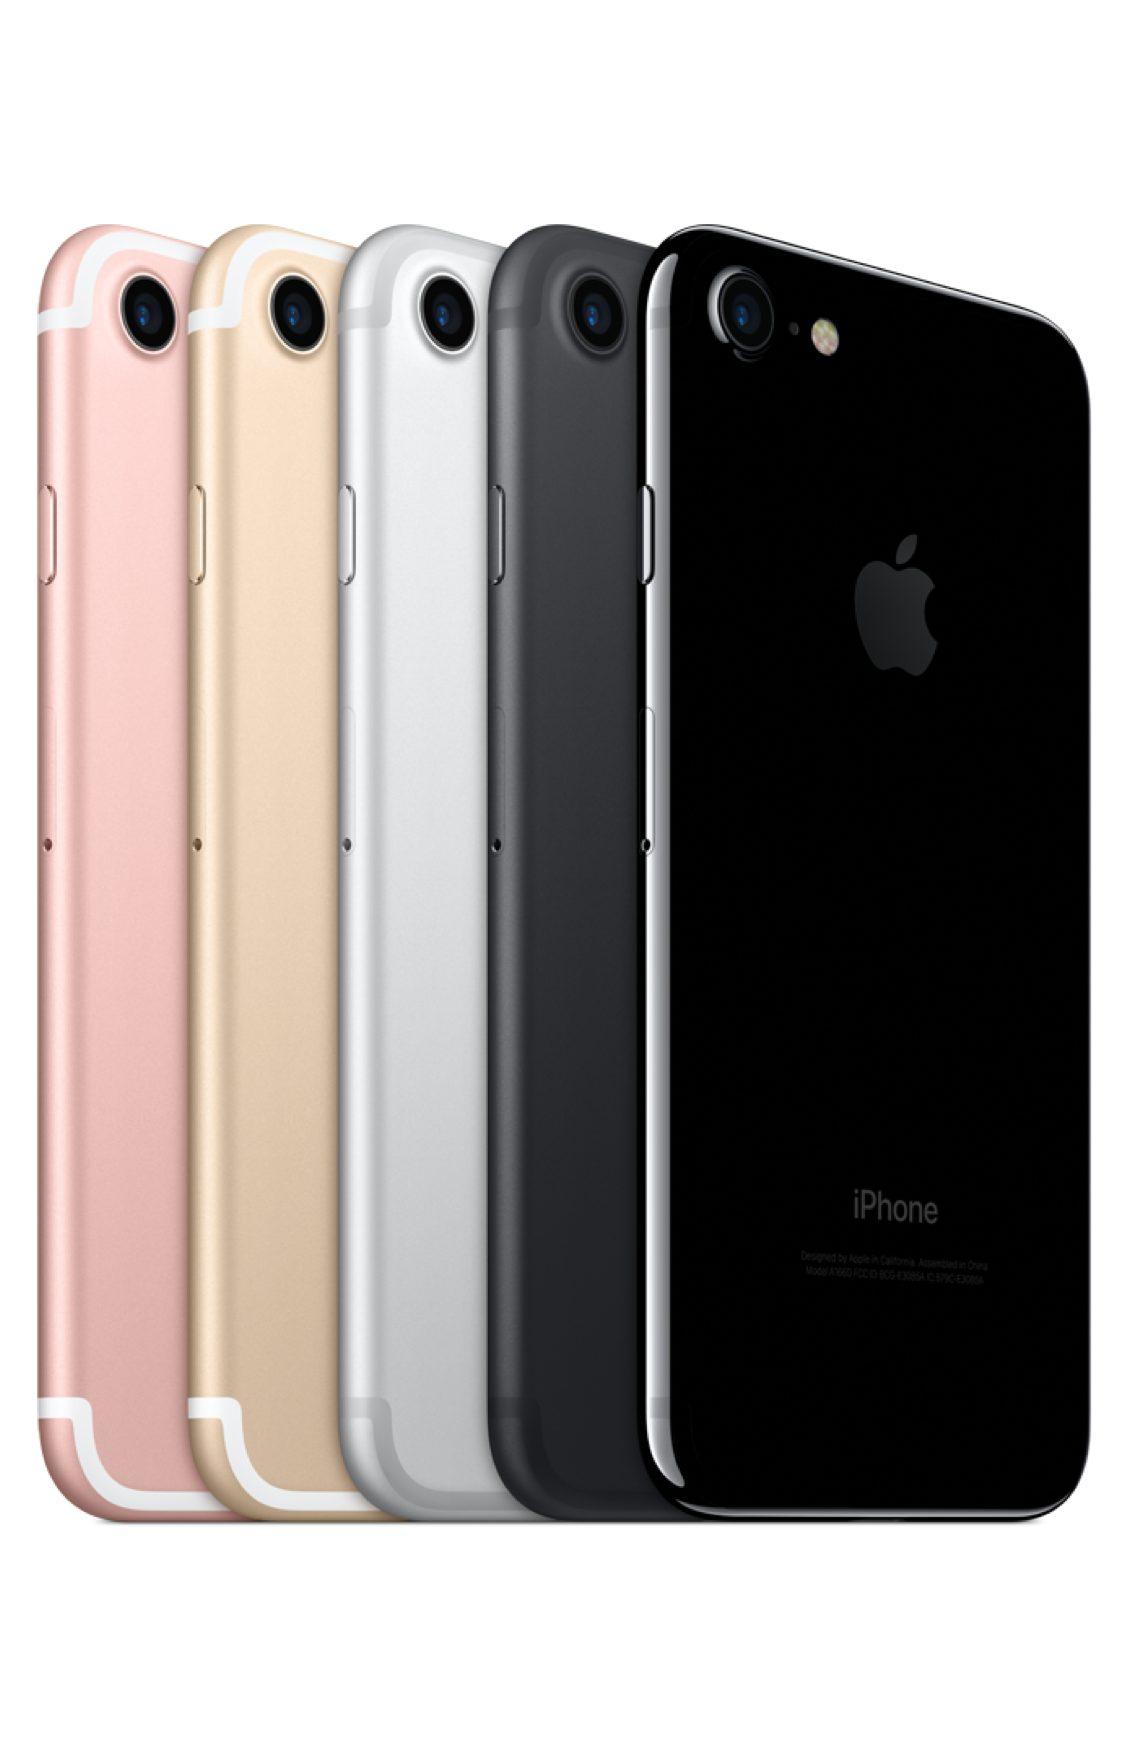 Apple Iphone 7 Plus Features And Reviews Boost Mobile